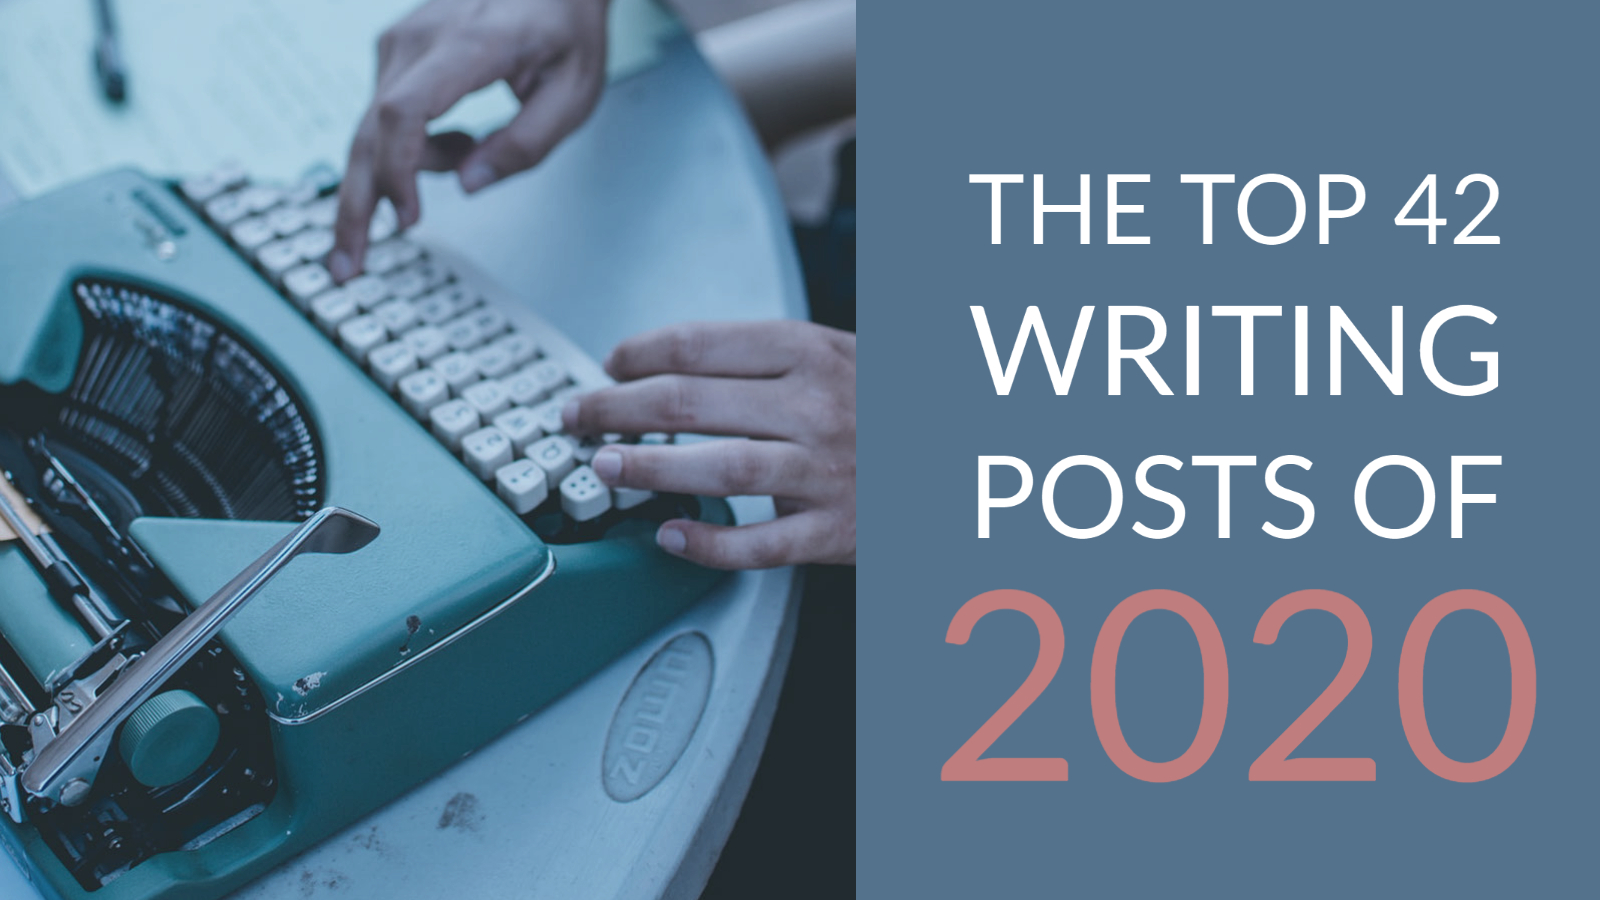 The Top 42 Writing Posts Of 2020